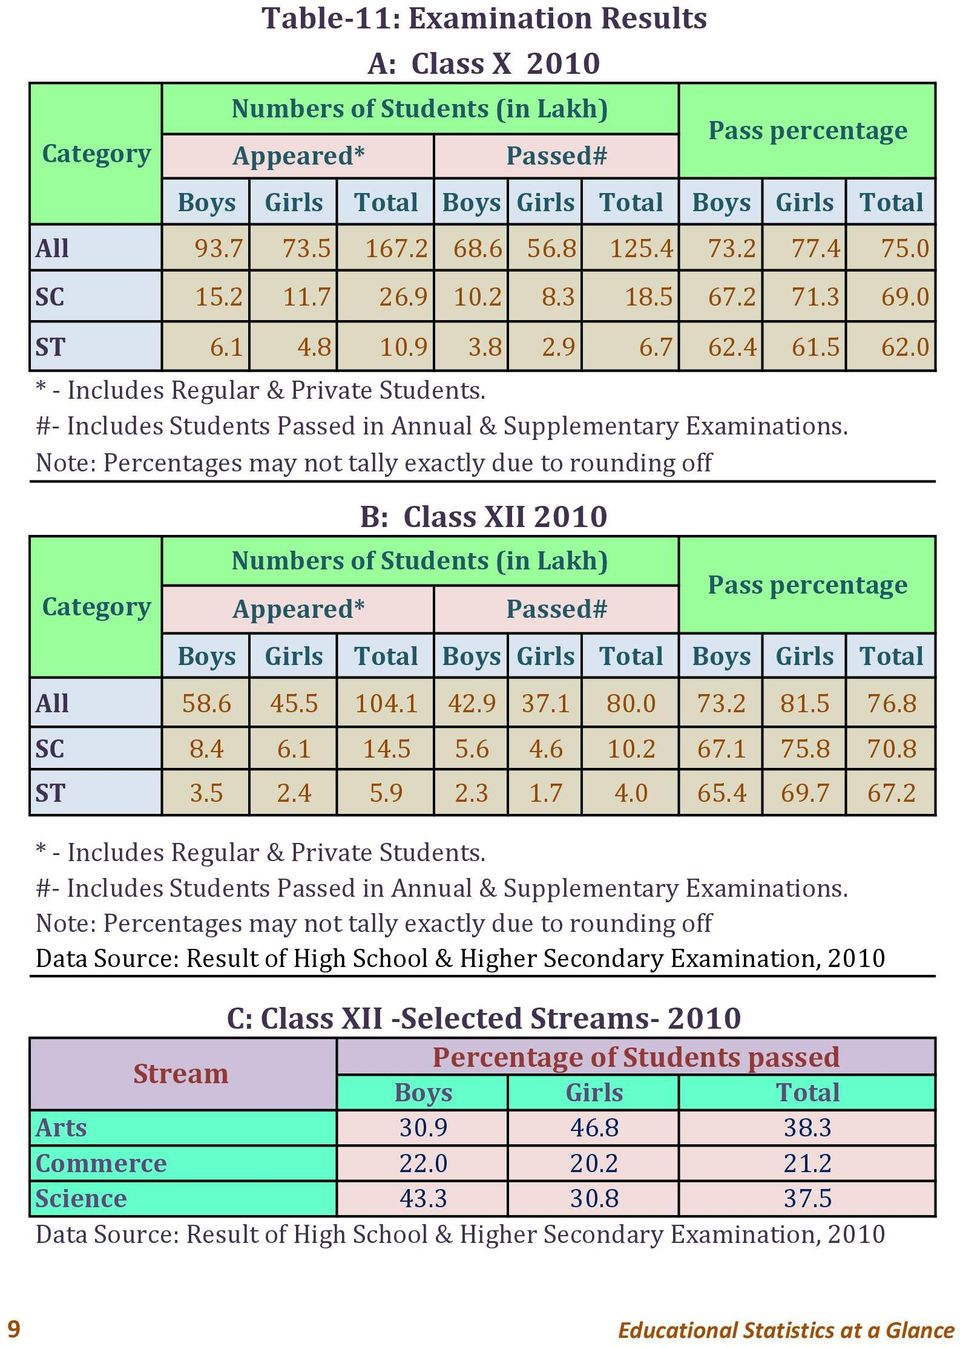 Note: Percentages may not tally exactly due to rounding off Category Table 11: Examination Results A: Class X 2010 Numbers of Students (in Lakh) Appeared* Passed# B: Class XII 2010 Numbers of